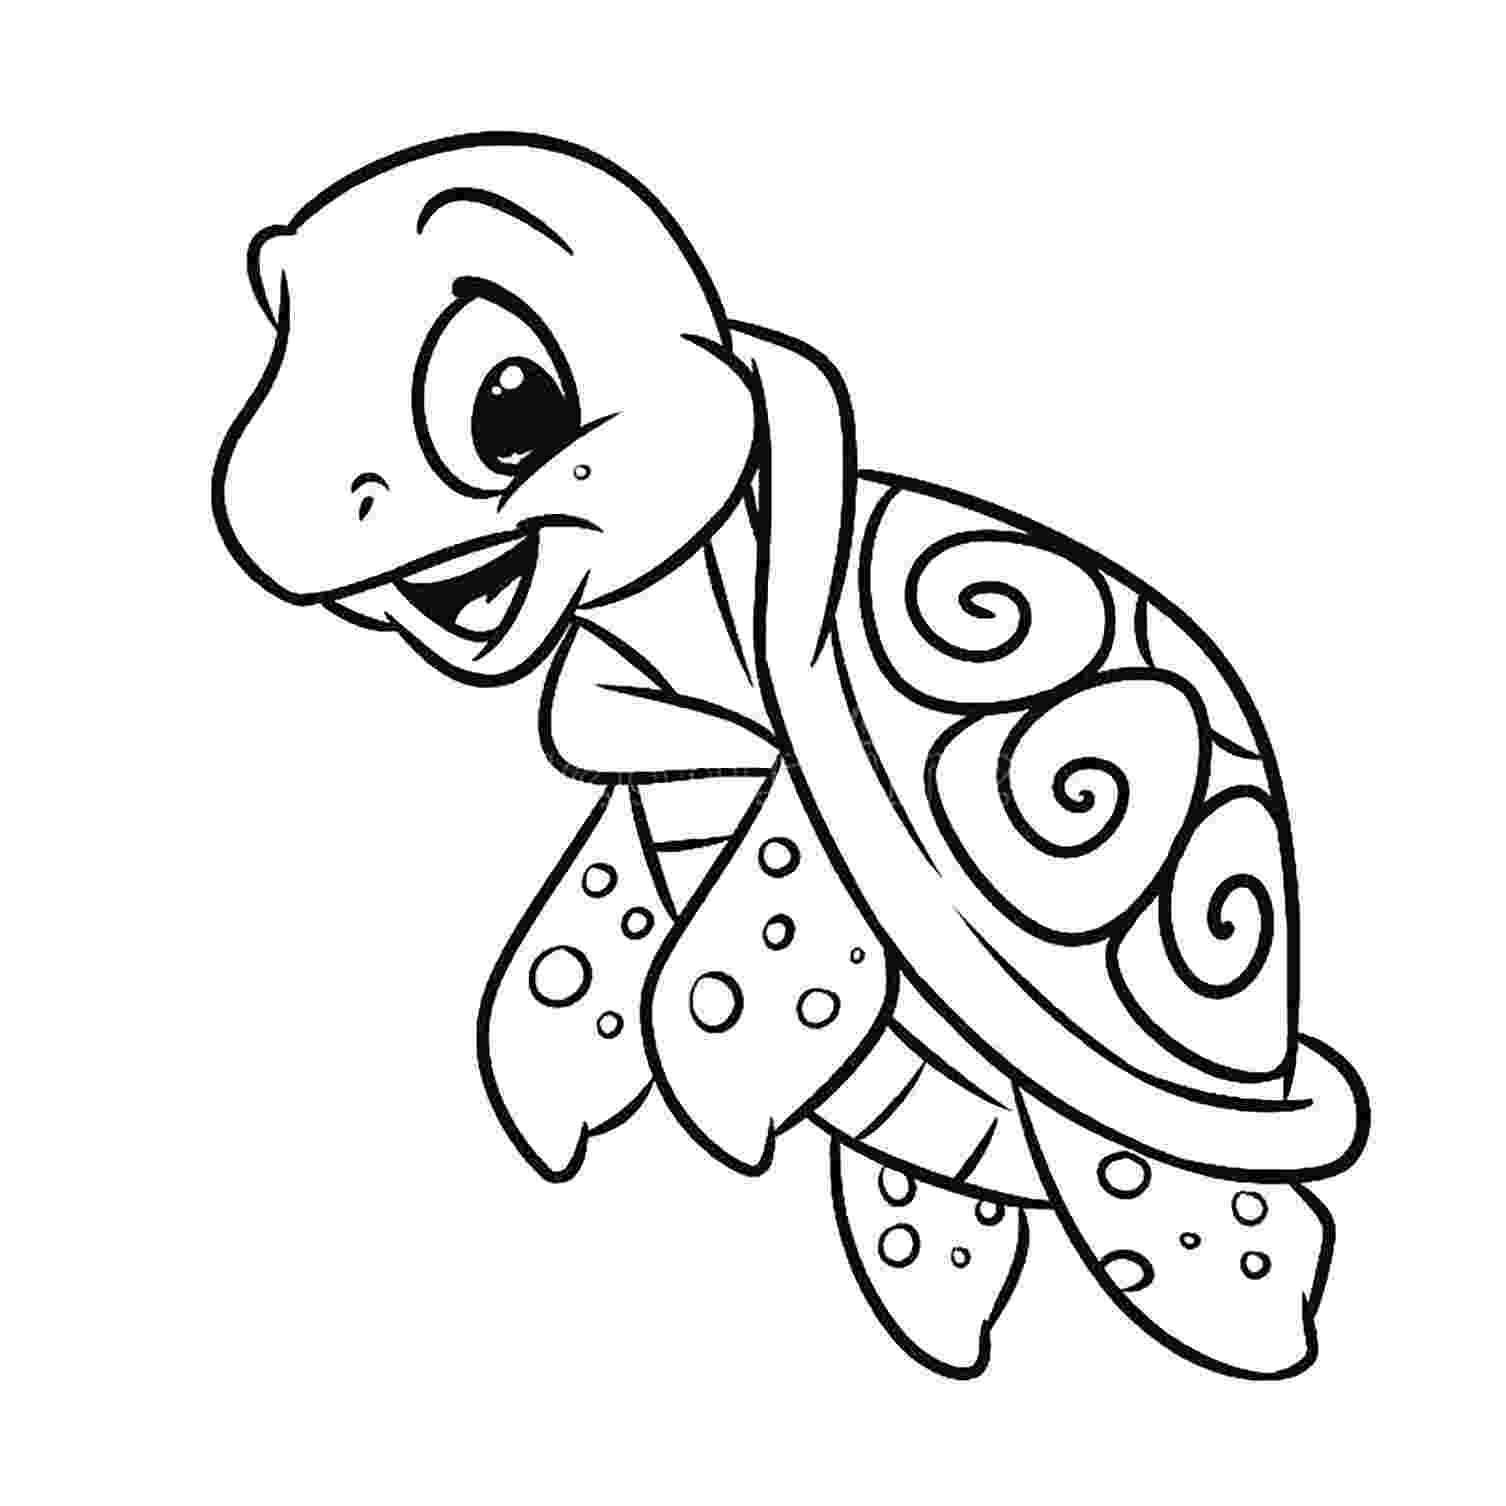 turtle pictures to color free printable turtle coloring pages for kids to turtle color pictures